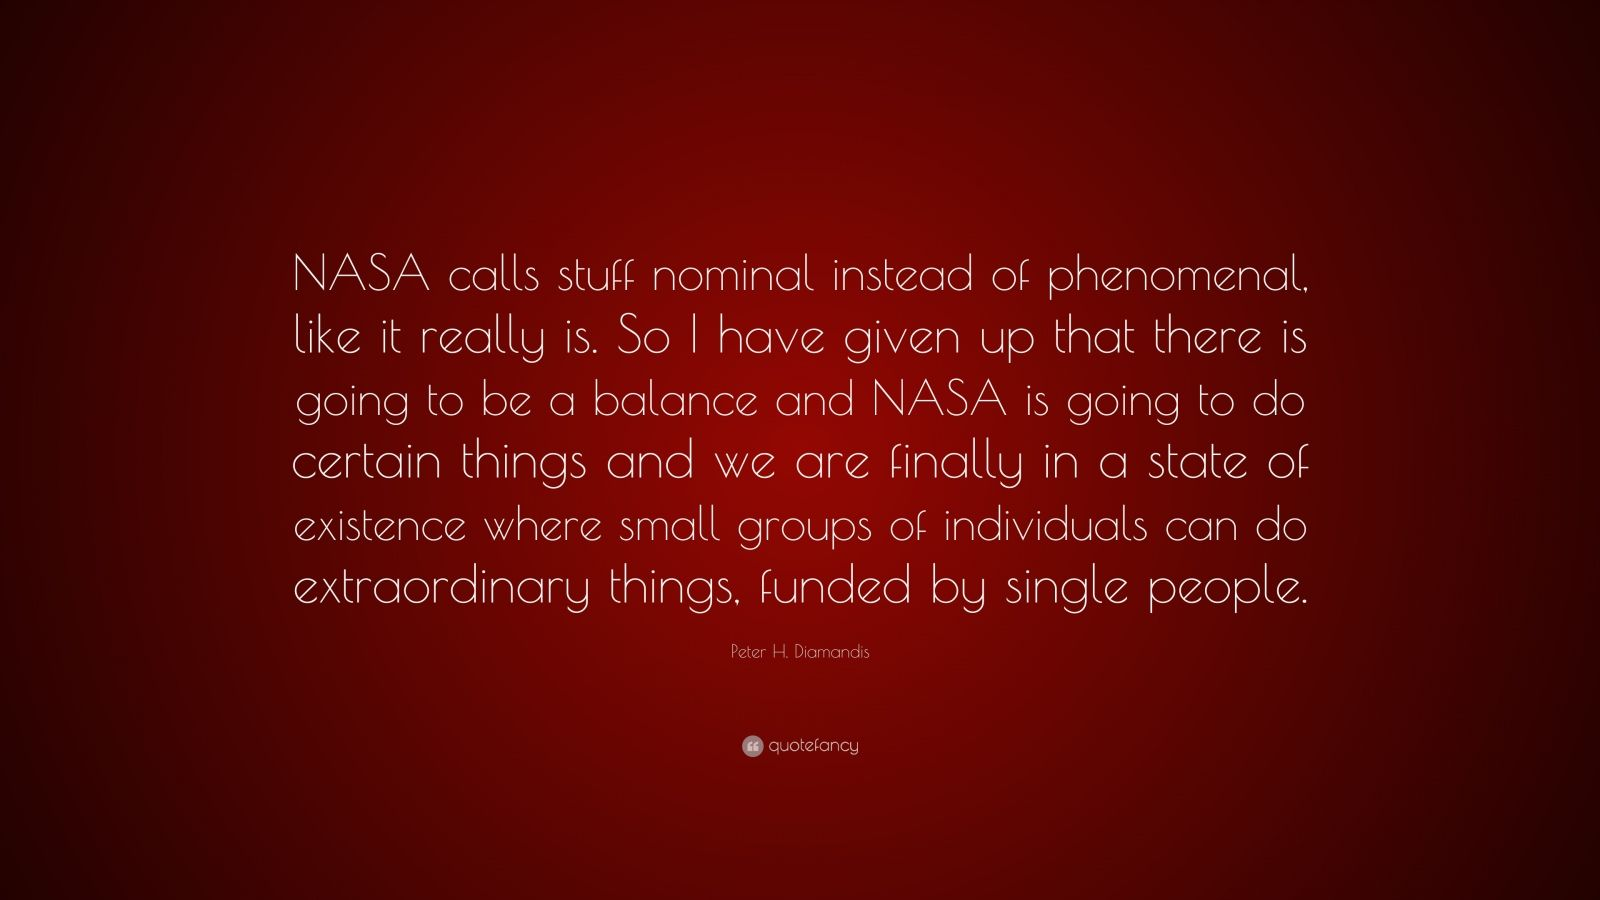 """Peter H. Diamandis Quote: """"NASA calls stuff nominal instead of phenomenal, like it really is. So I have given up that there is going to be a balance and NASA is going to do certain things and we are finally in a state of existence where small groups of individuals can do extraordinary things, funded by single people."""""""